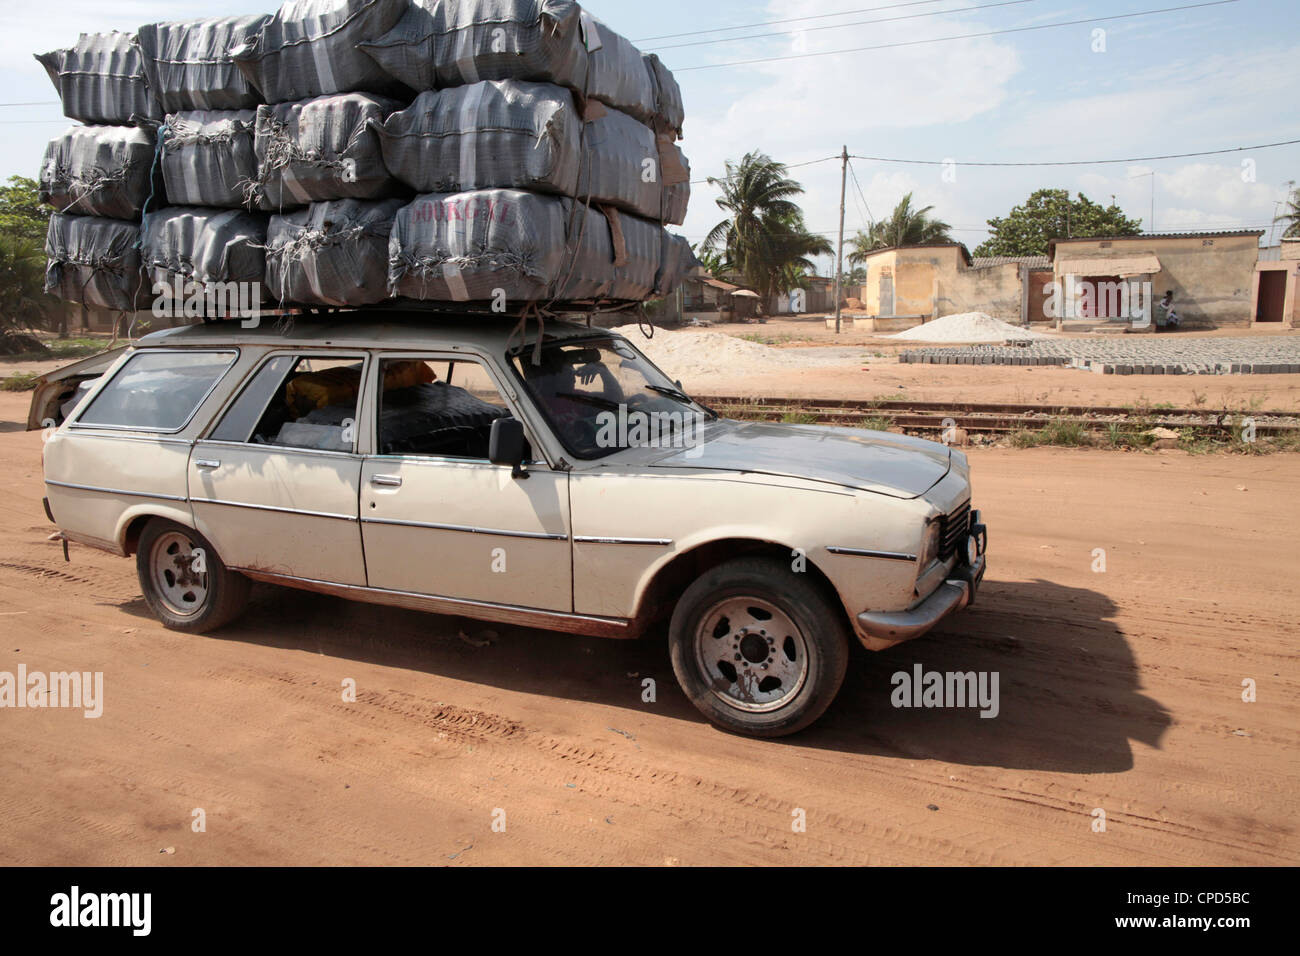 Overloaded vehicle, Lome, Togo, West Africa, Africa - Stock Image